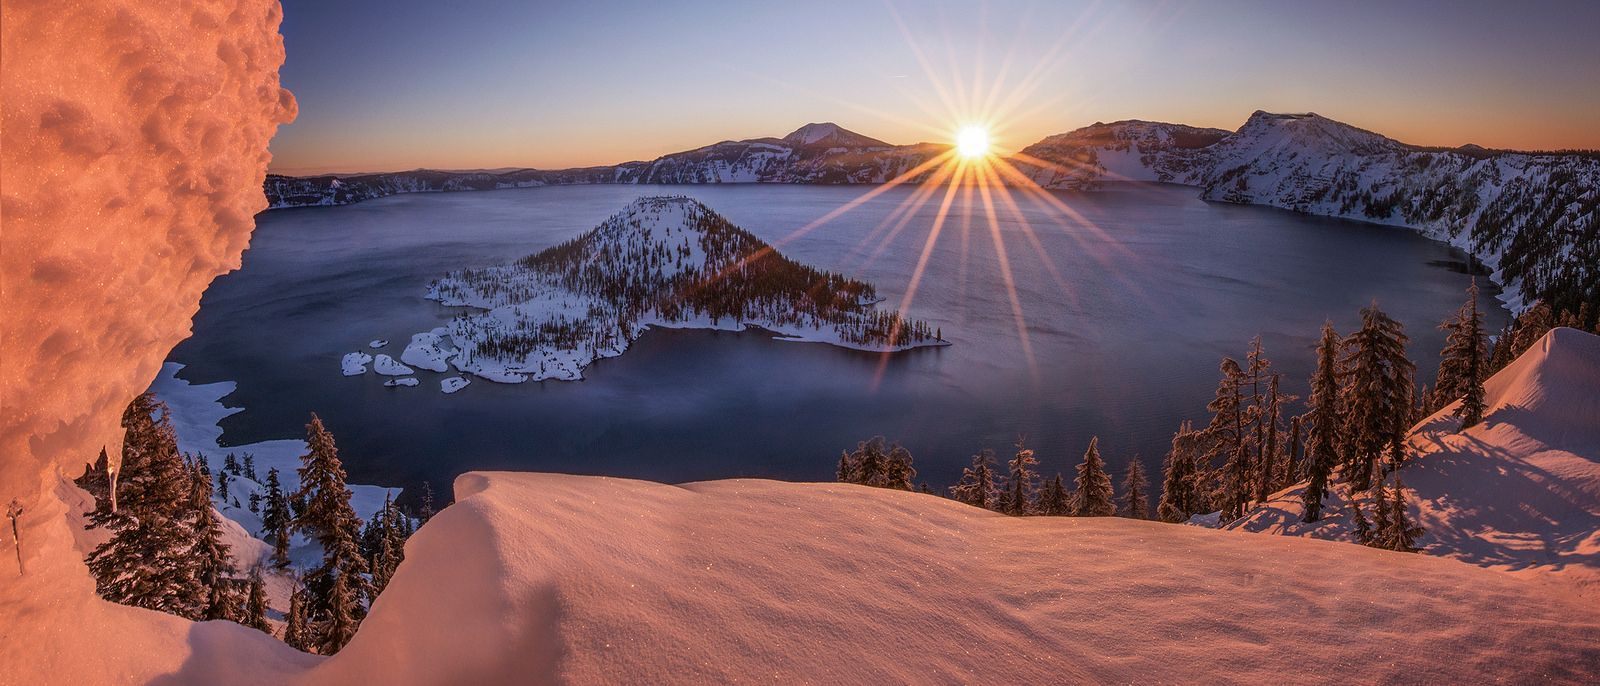 Warmth of Winter (Explored) #craterlakeoregon Crater Lake, Oregon Please Connect with me: Facebook * 500px * Instagram www.sapnareddy.com Inspired by the work of Alex Noriega. Have wanted to shoot Crater Lake in winter for a while now. Having never snowshowed before I was both intimidated and intrigued by the 5 mile hike that is involved in getting this shot. The trail is along the rim road which gets shut down in winter. I used the women's version of the red feather snowshoes and they worked be #craterlakeoregon